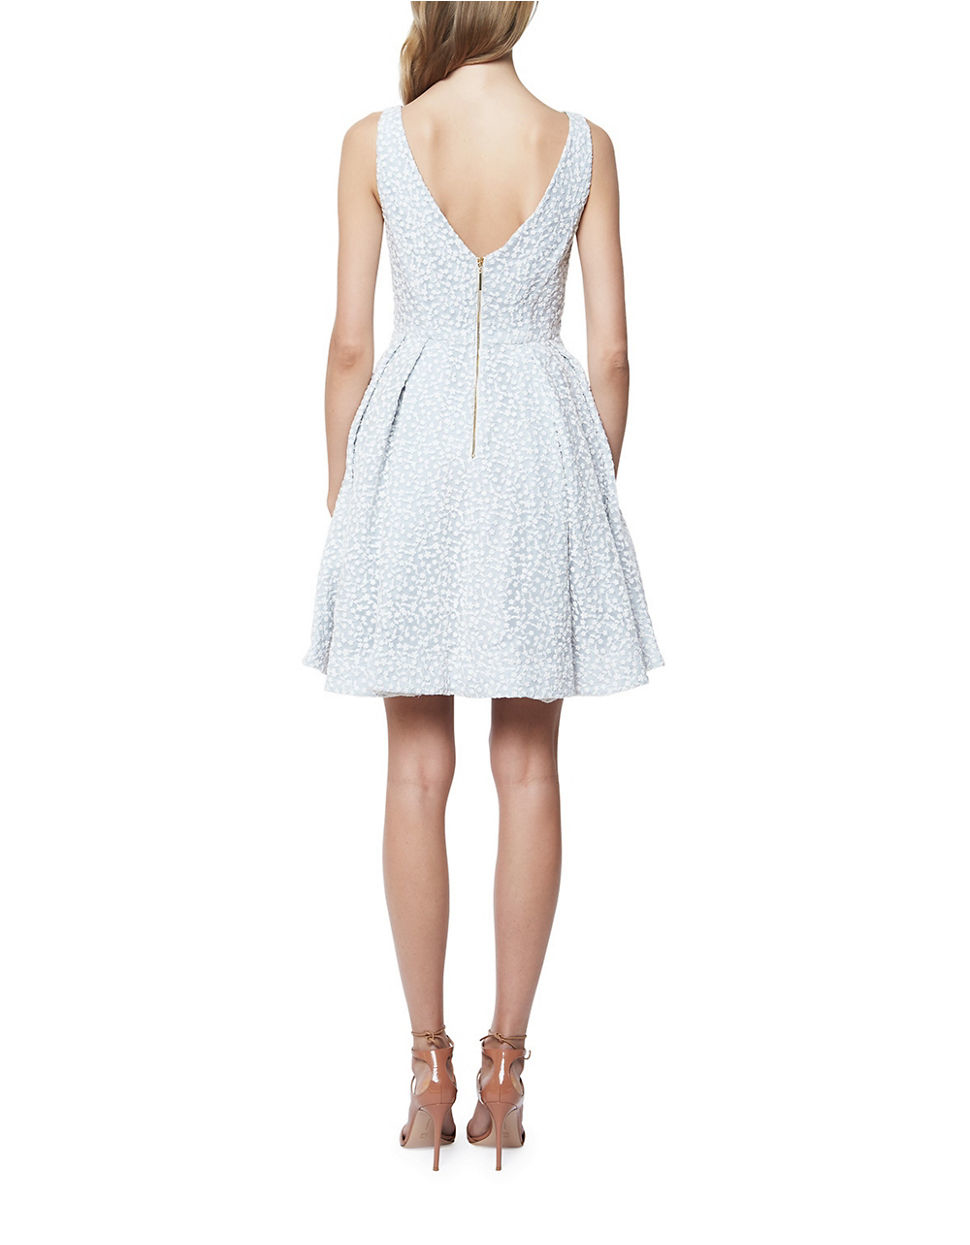 Lyst Erin Fetherston Coco Fit And Flare Dress In White